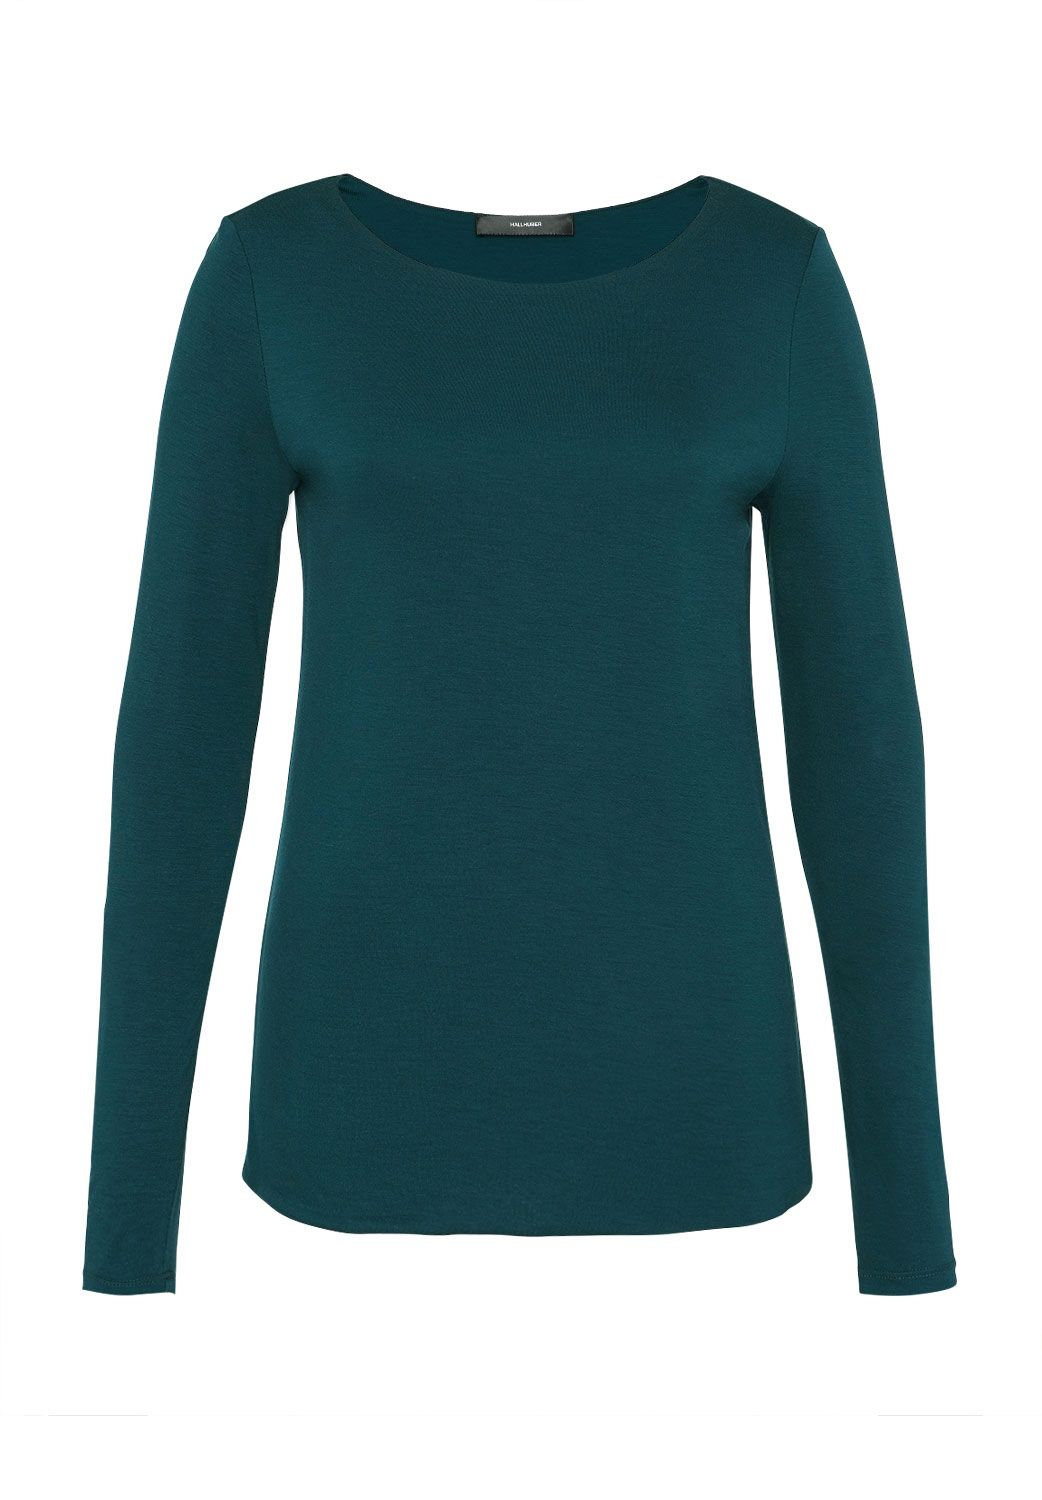 Hallhuber Hallhuber Long Sleeve with Bat Neckline, Blue